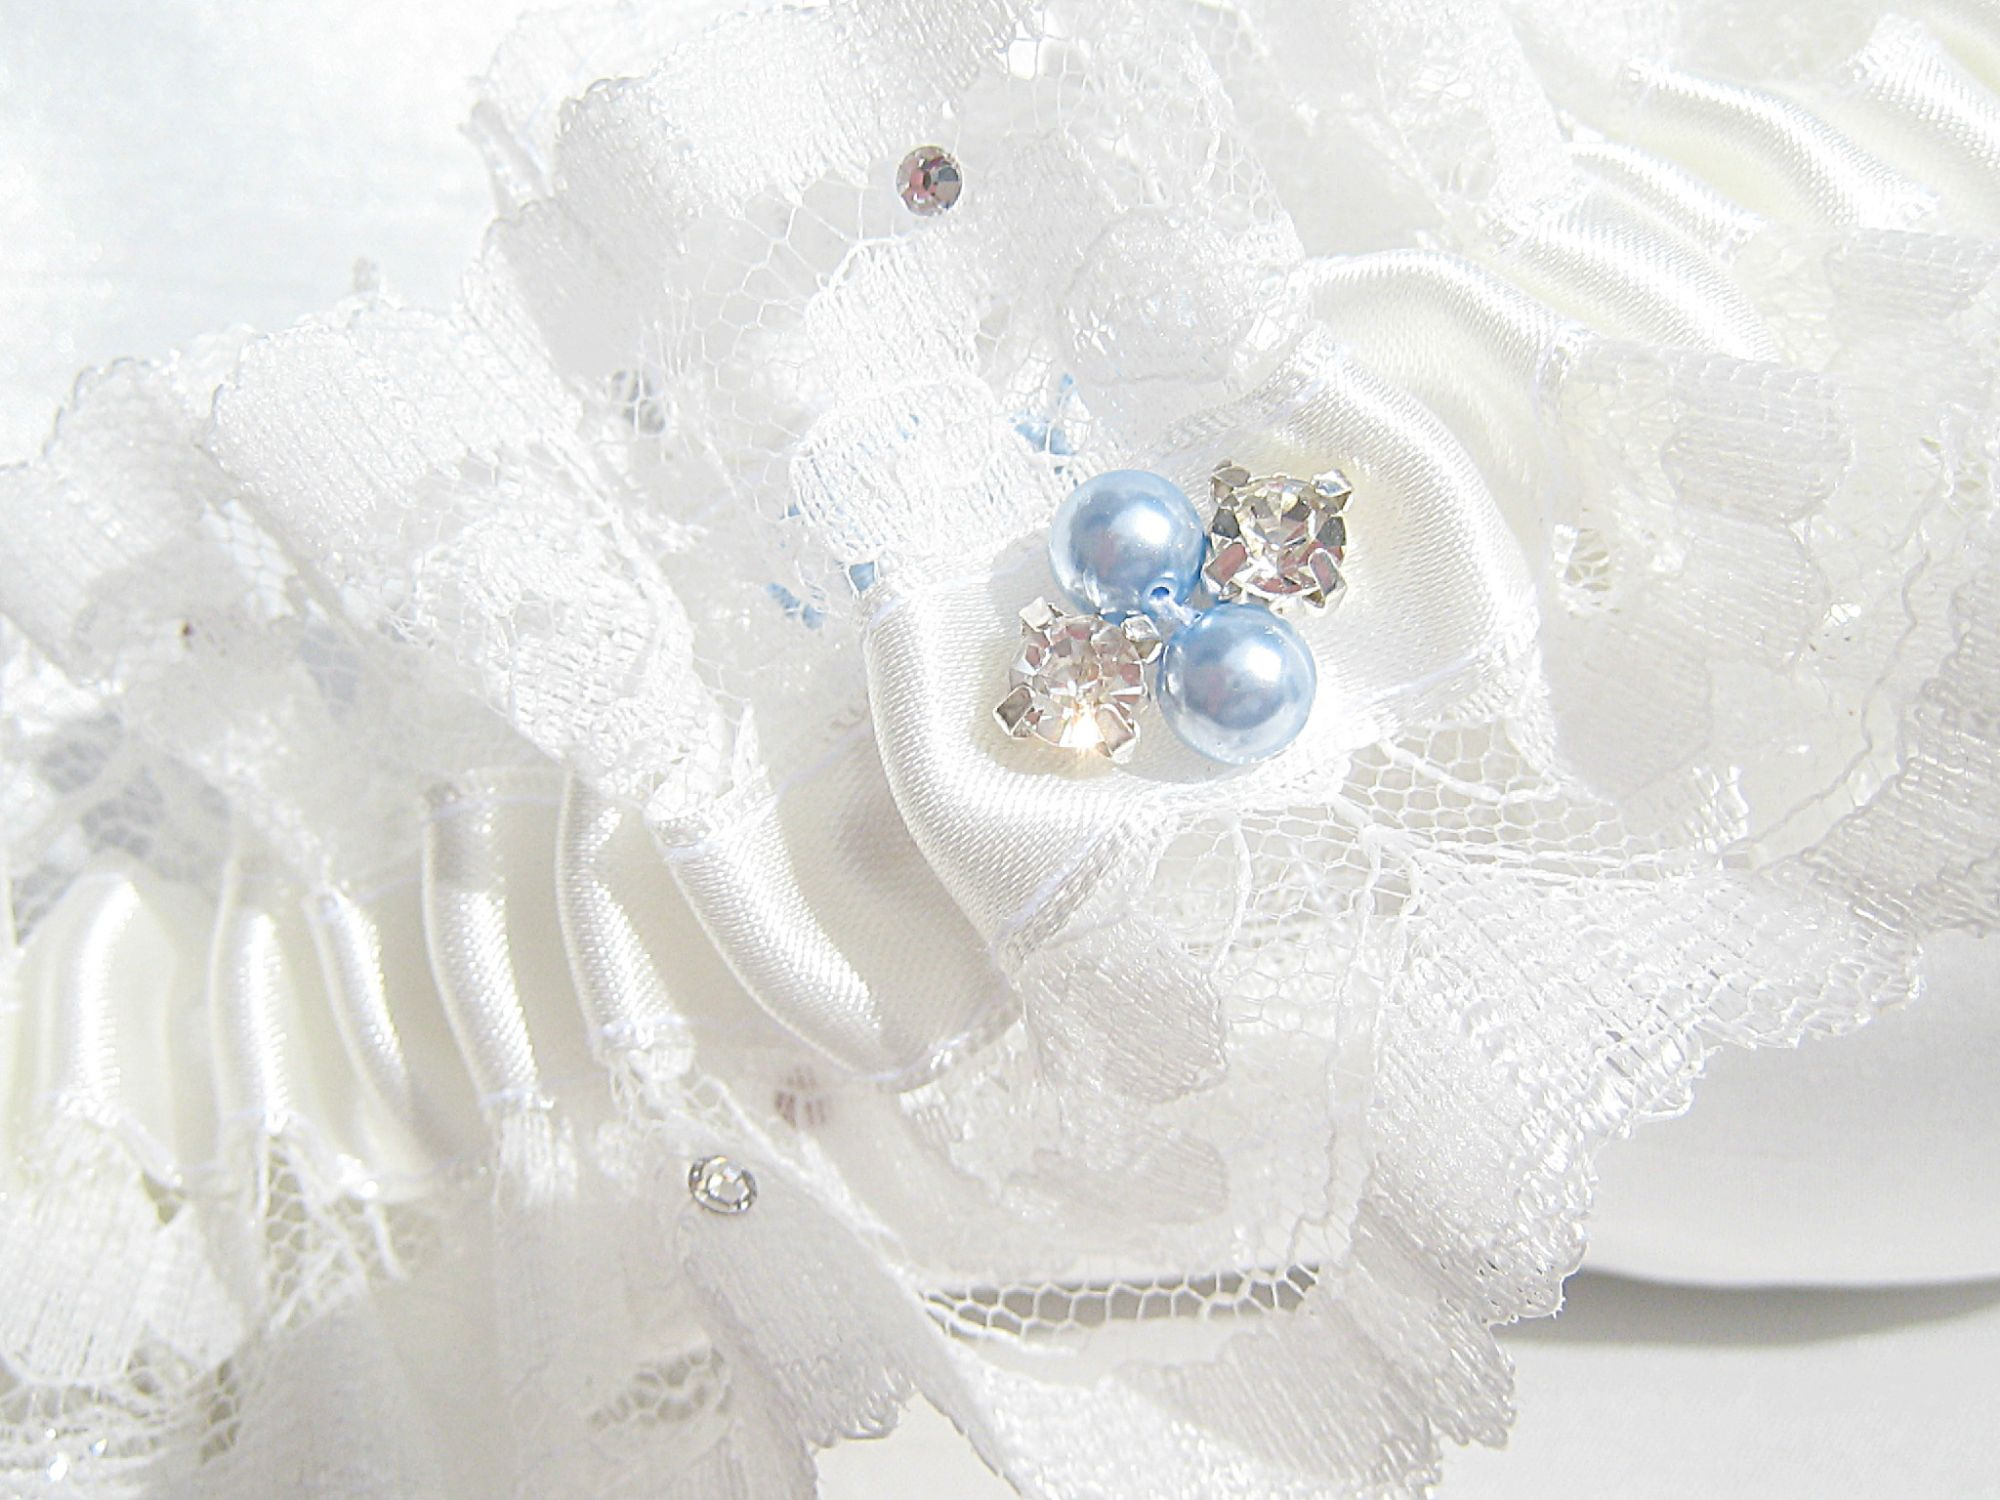 Blue Wedding Garters, Personalised On The Inside With The Brides New Name & Wedding Date.